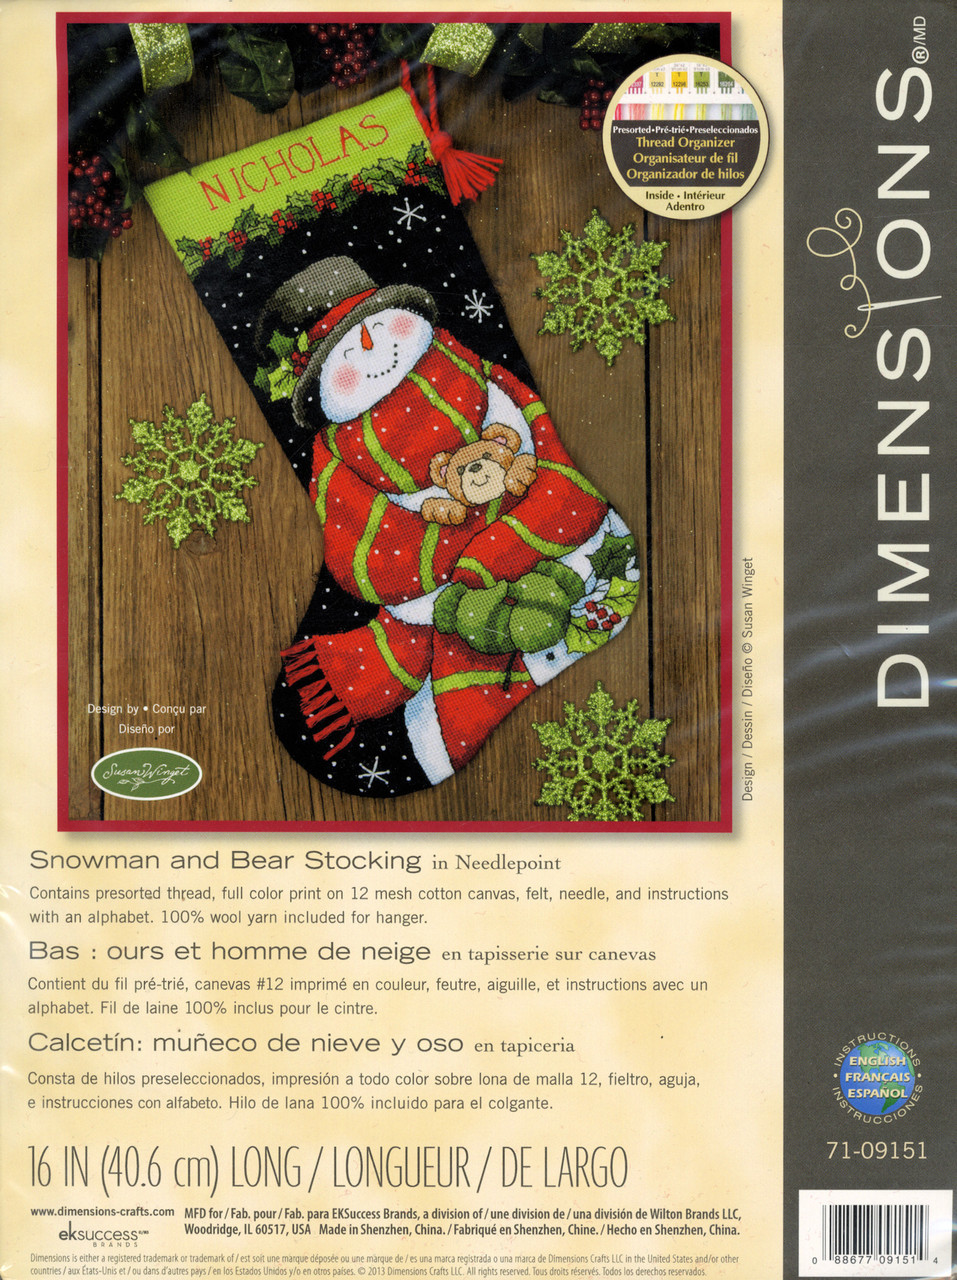 Dimensions - Snowman and Bear Stocking